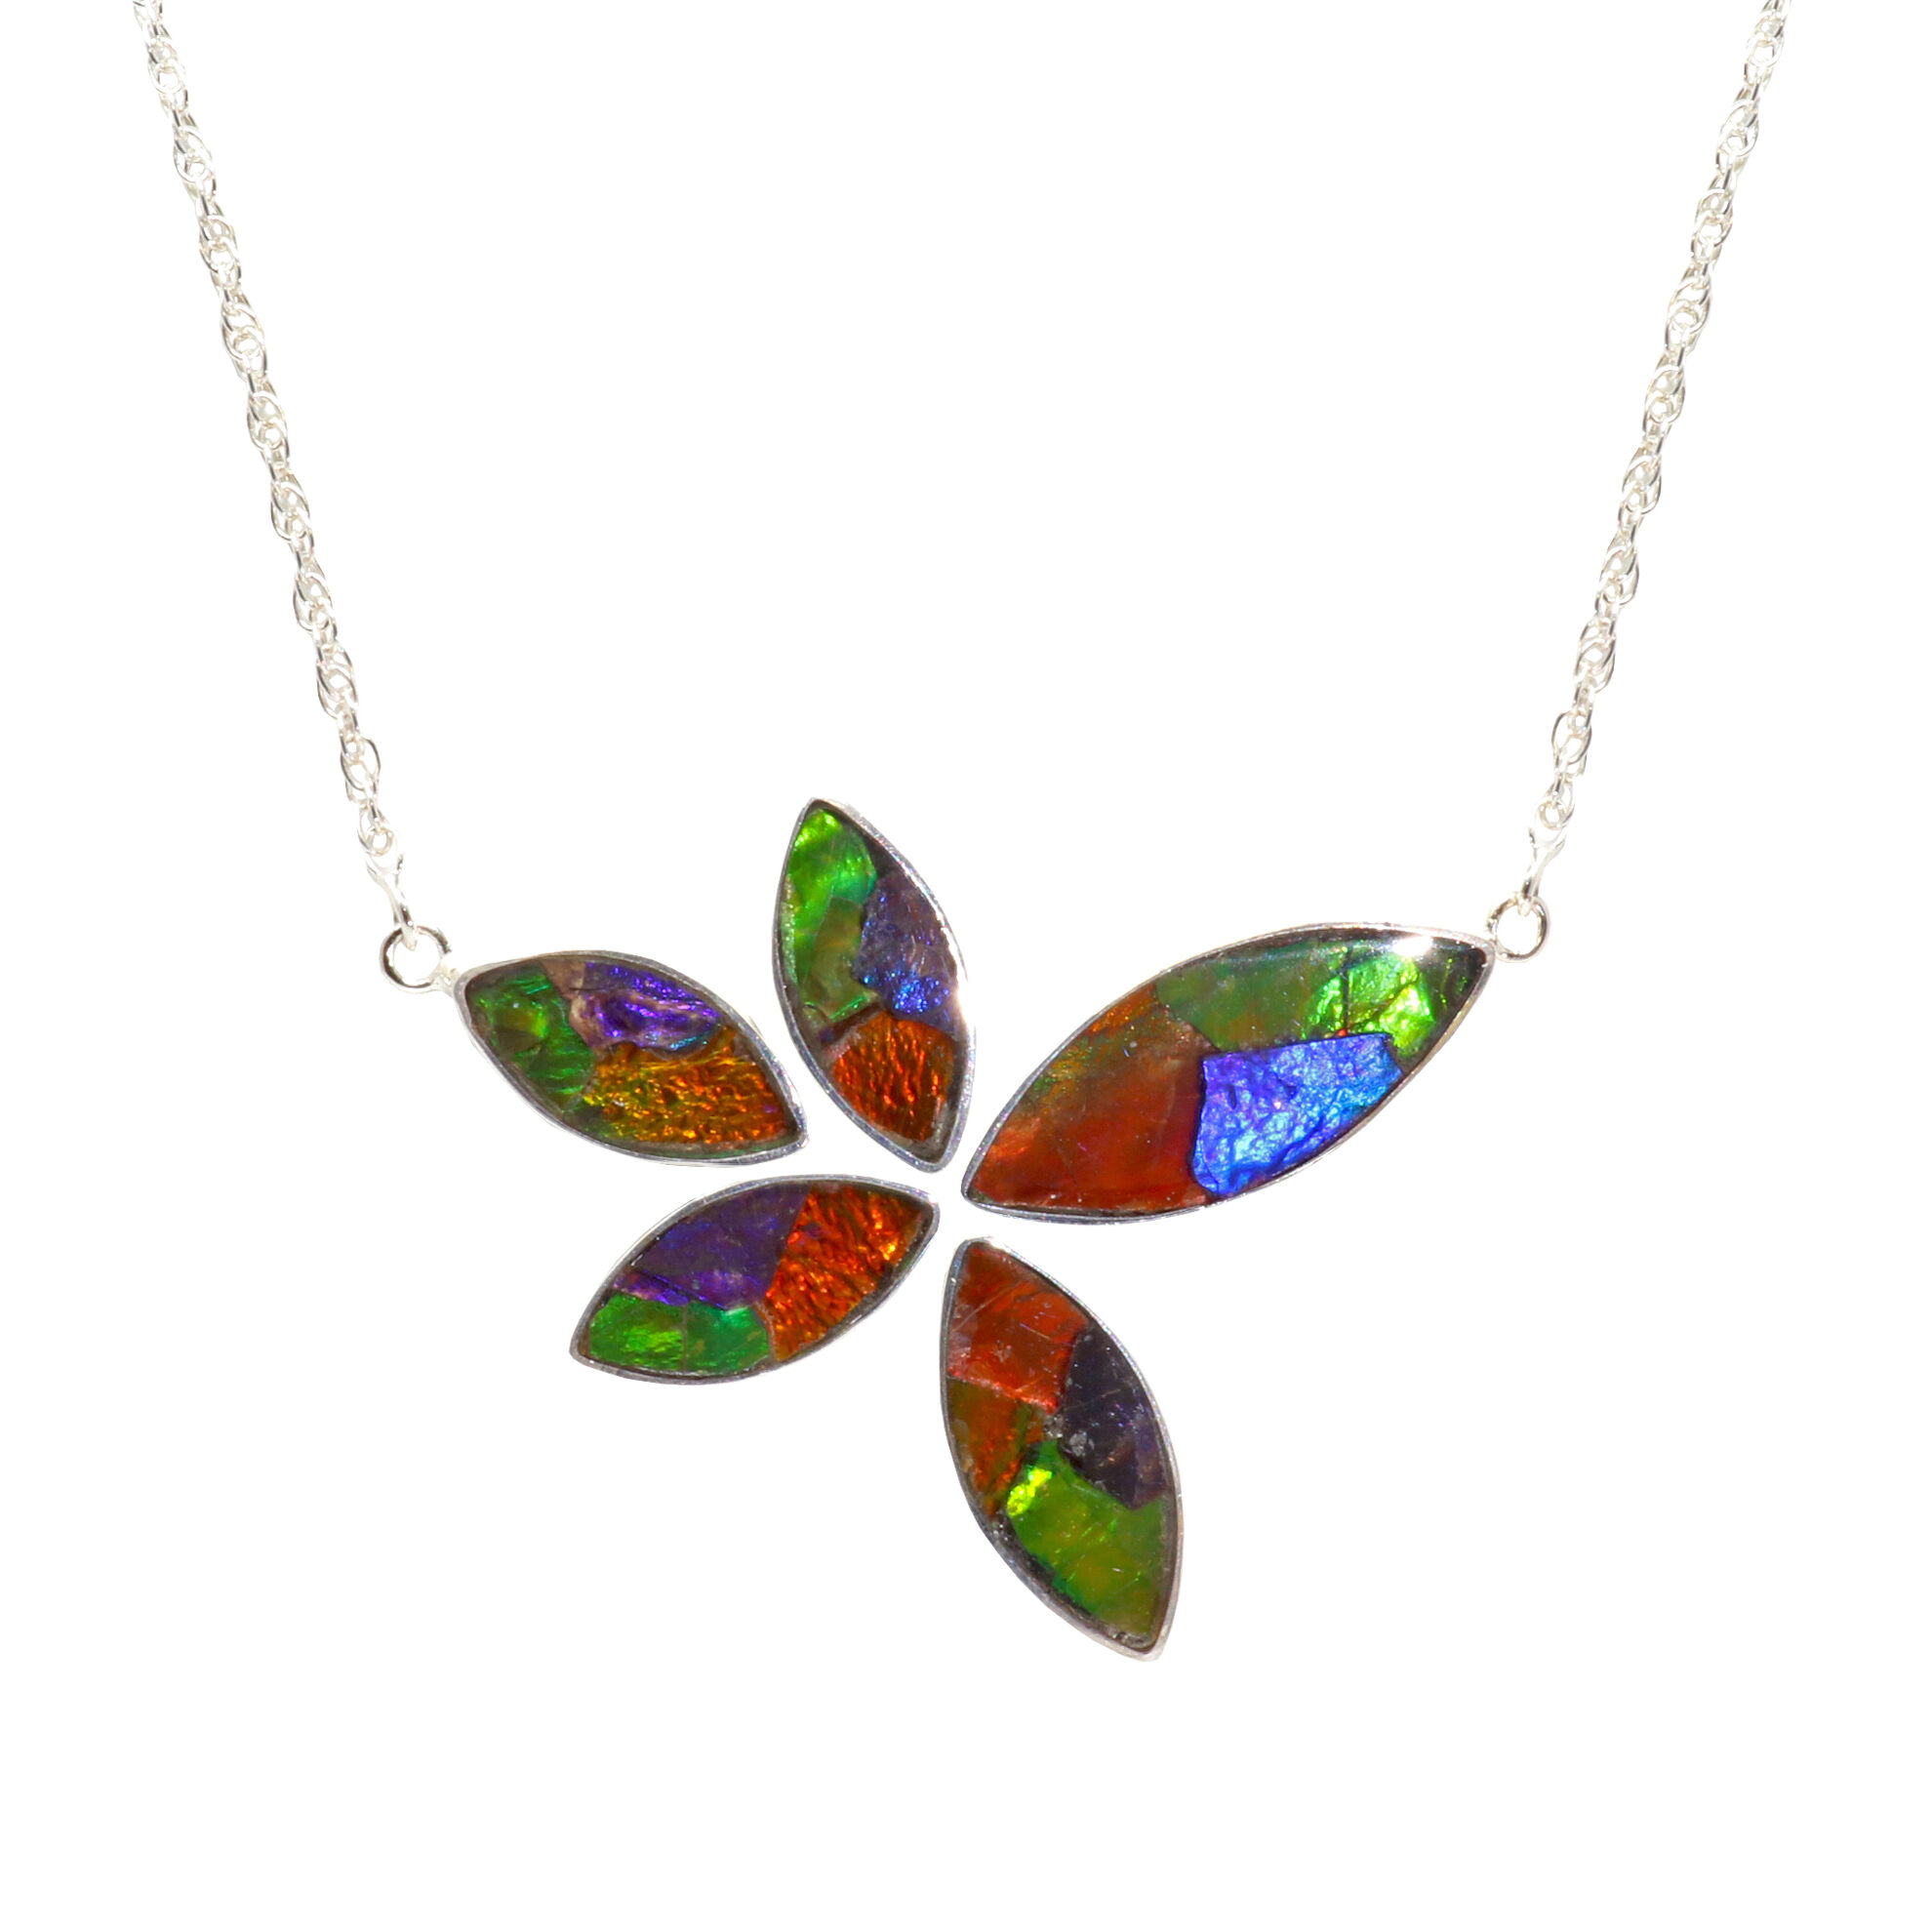 Ammolite Necklace 5 Sharp Oval Cabochons In Impressionistic Layout With Silver Bezels  18 Rolo Chain